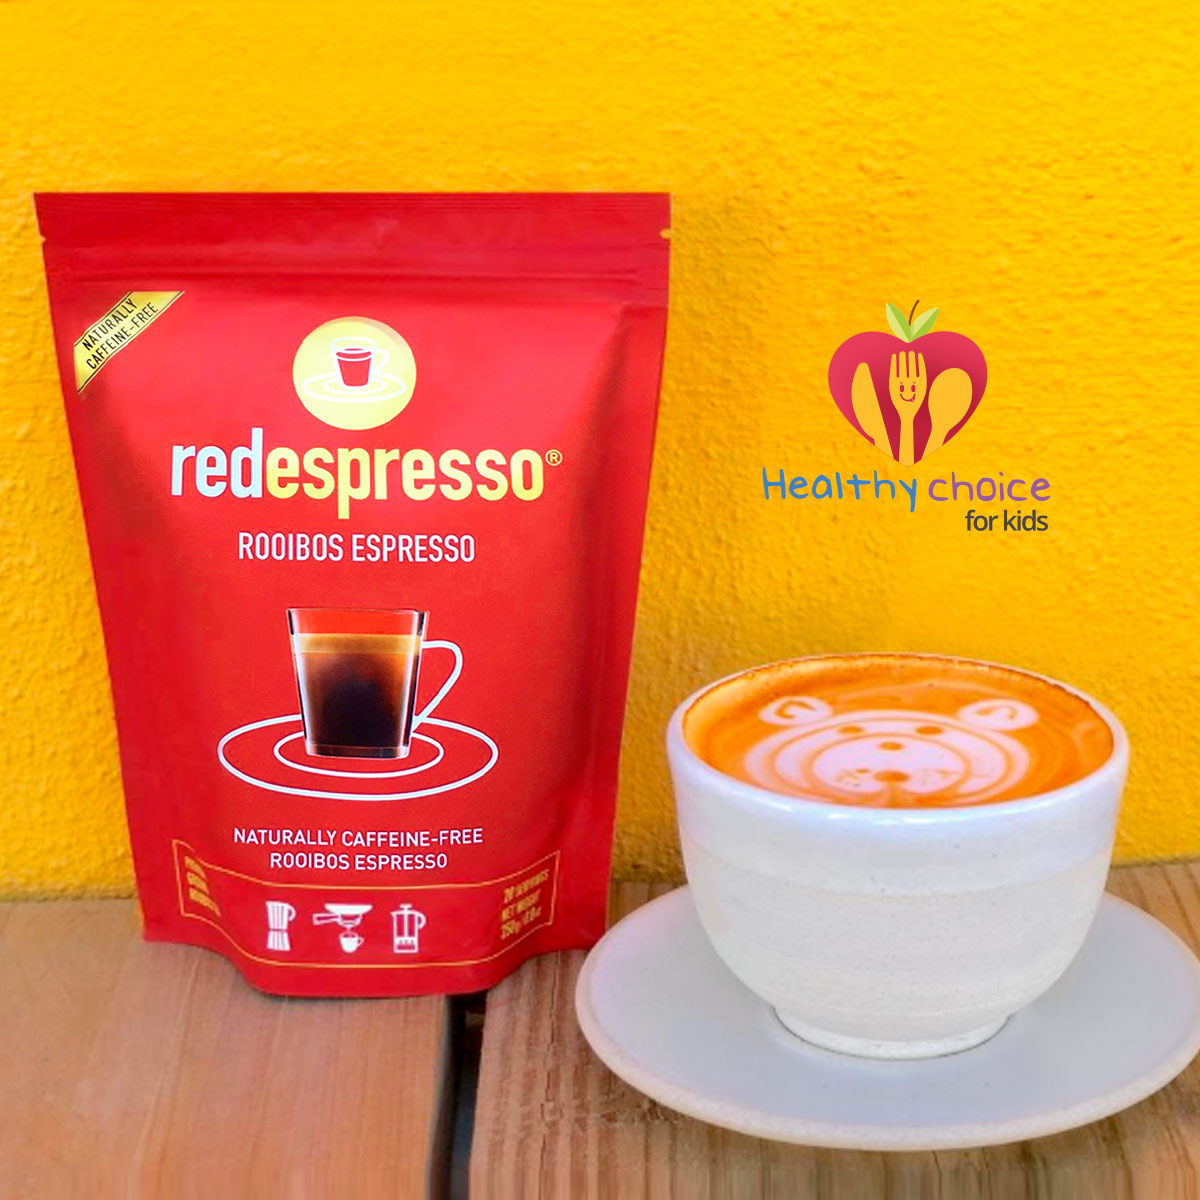 rooibos in a yellow background, rooibos in a cup and a logo informing that red espresso is a good choice for kids